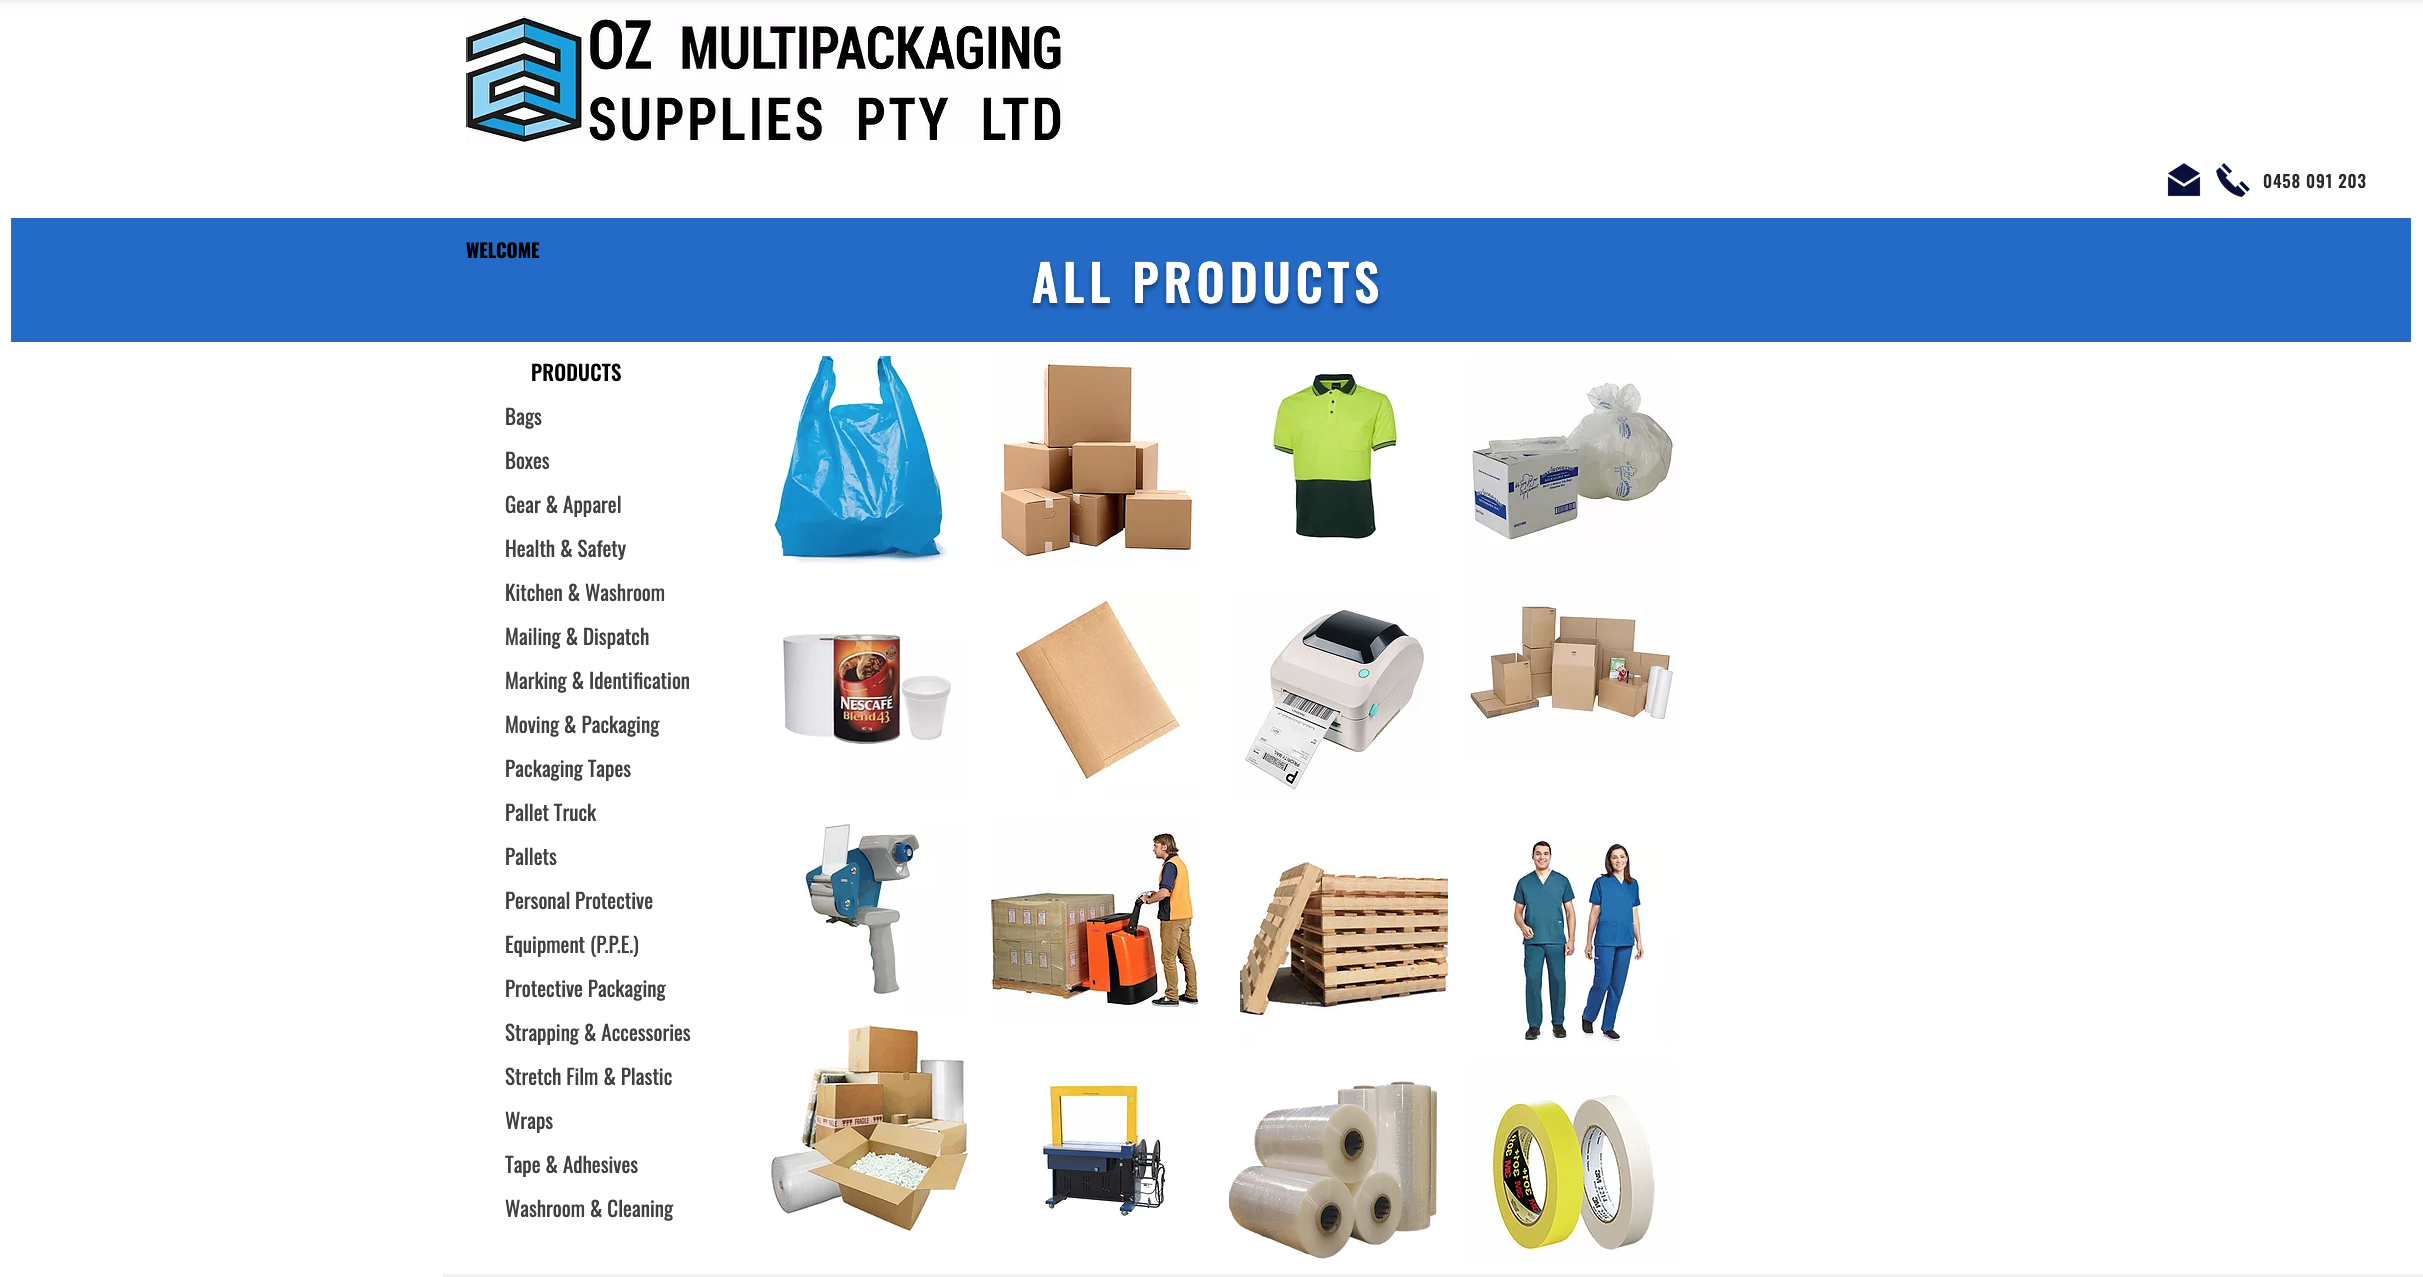 Oz Multi-Packaging